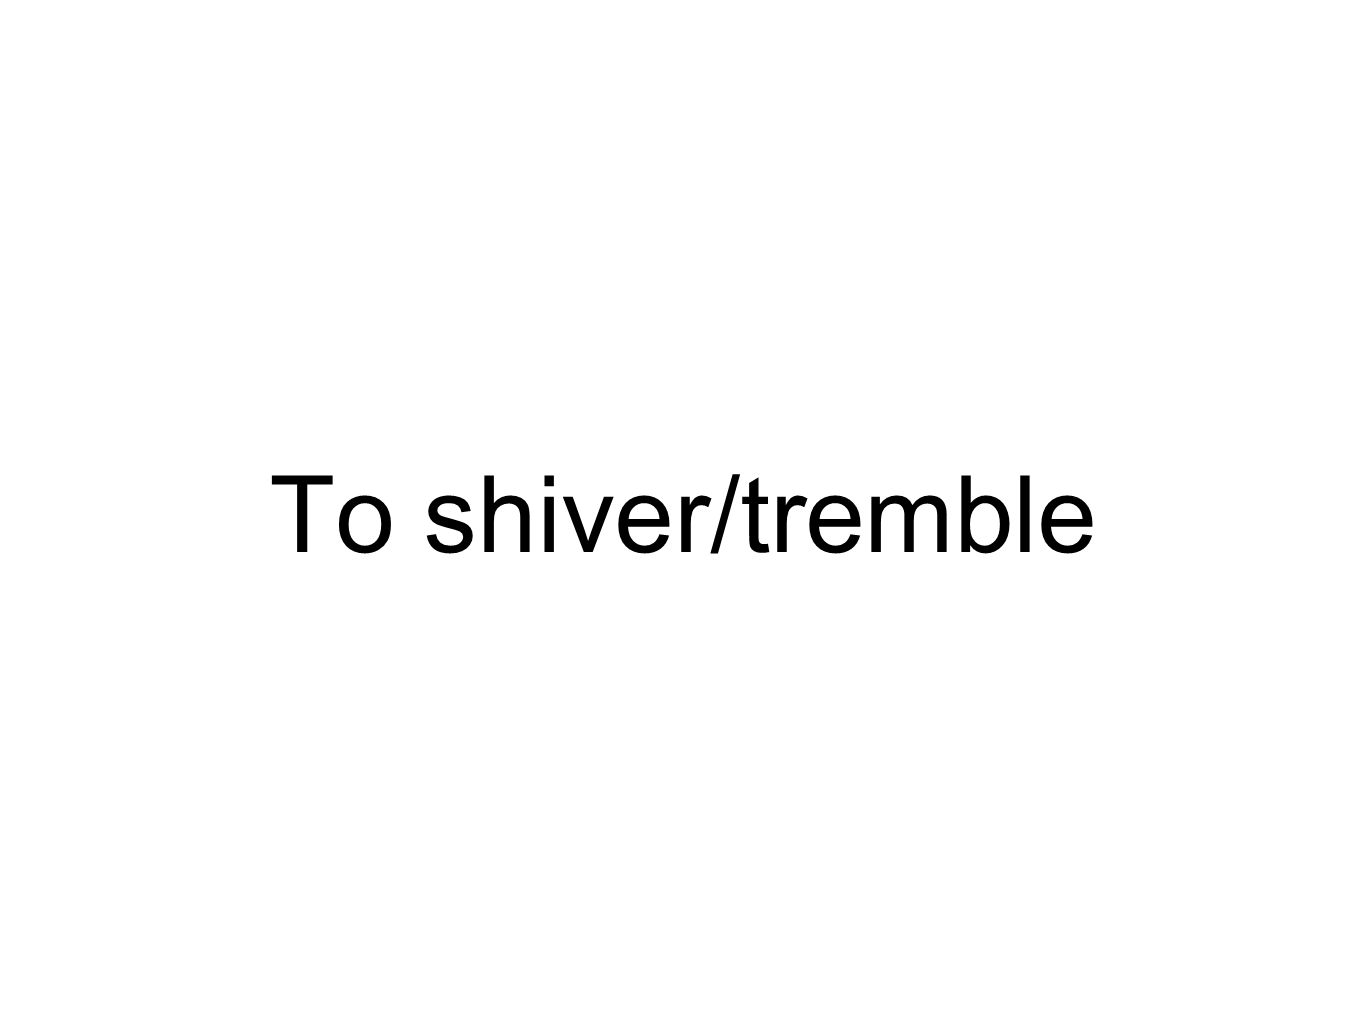 To shiver/tremble